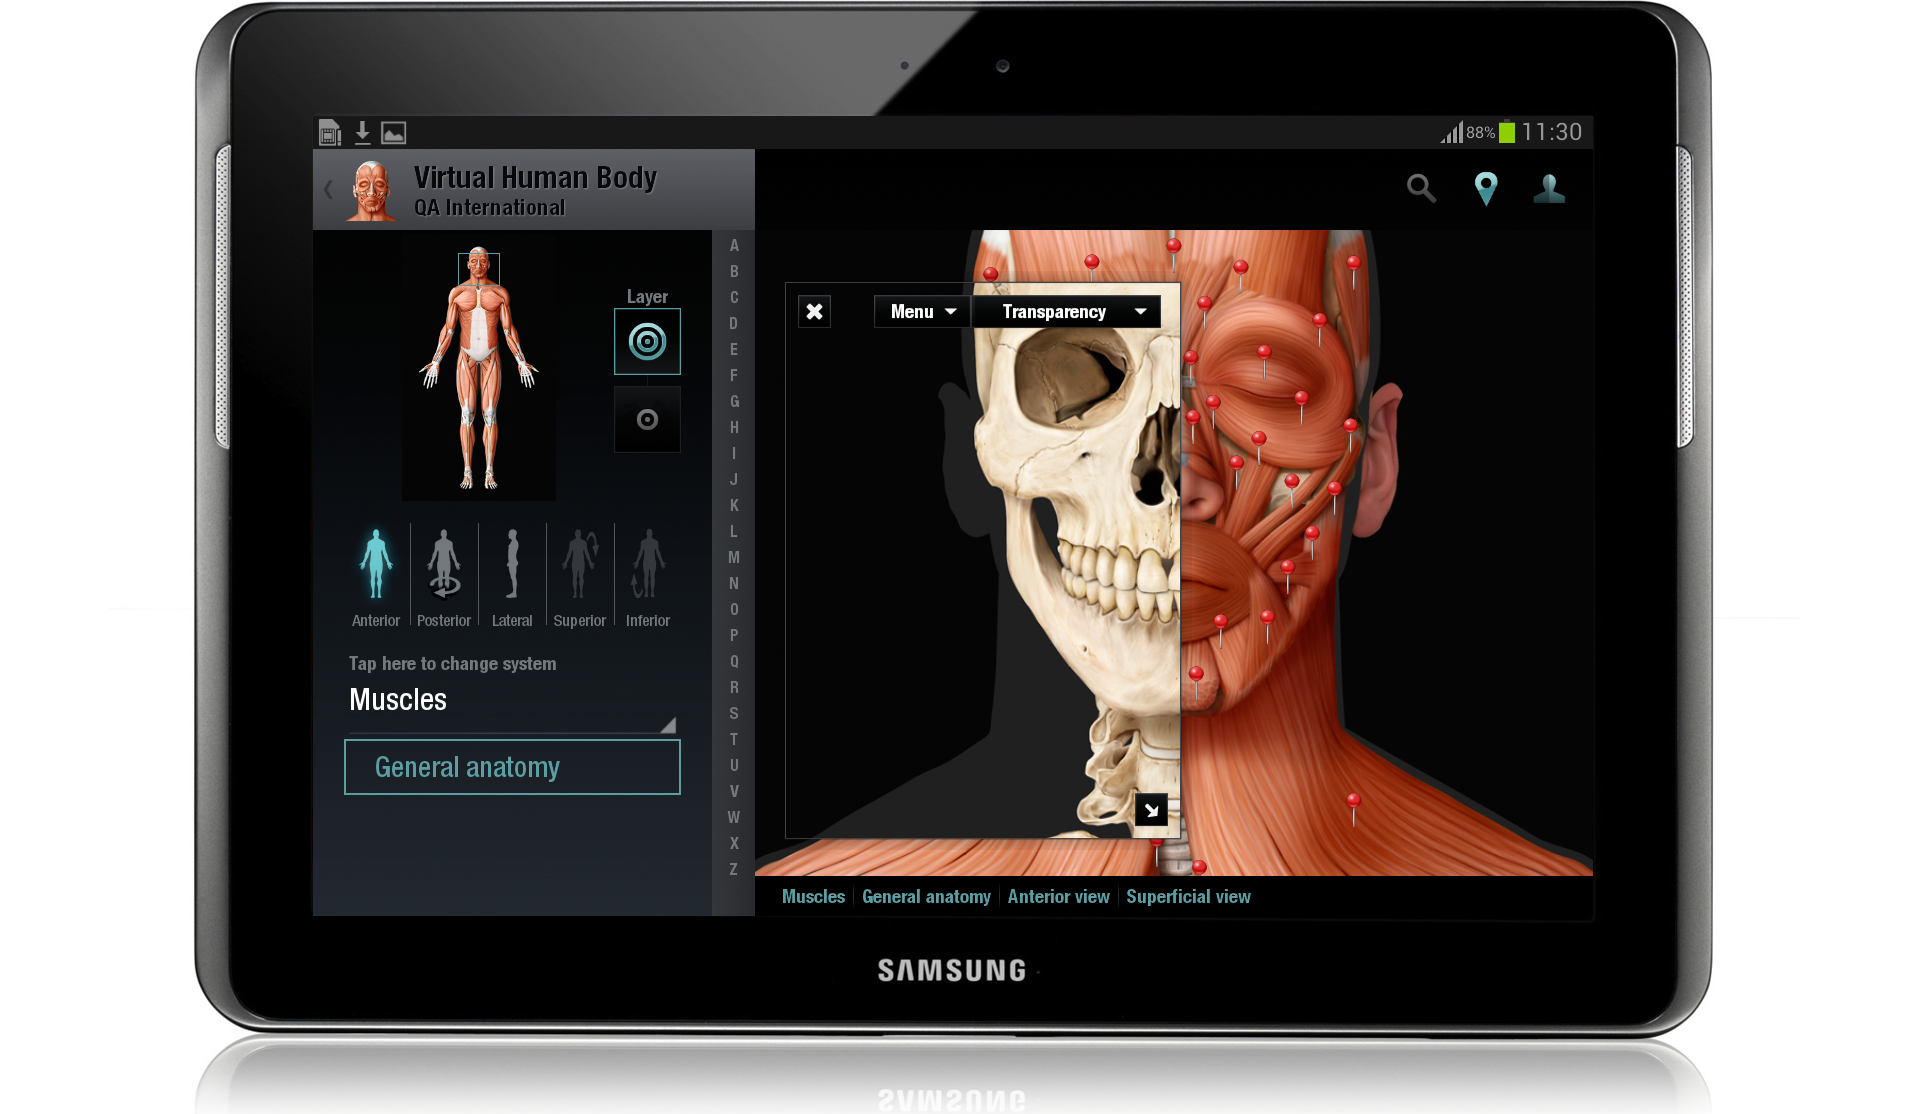 Virtual Human Body for Android - mintensive